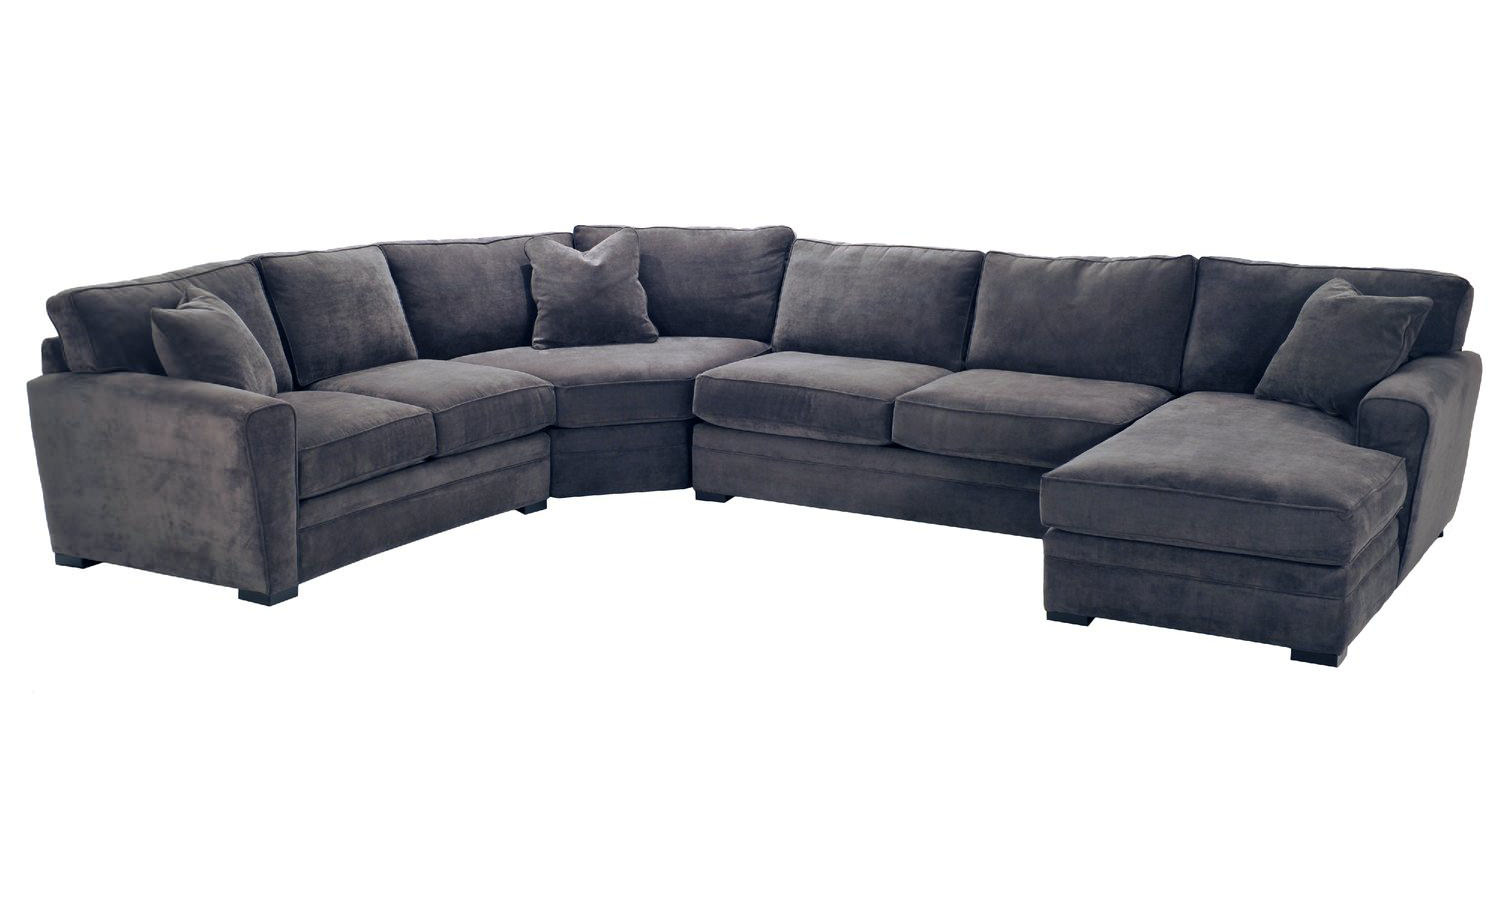 Artemis 4 Piece Sectional